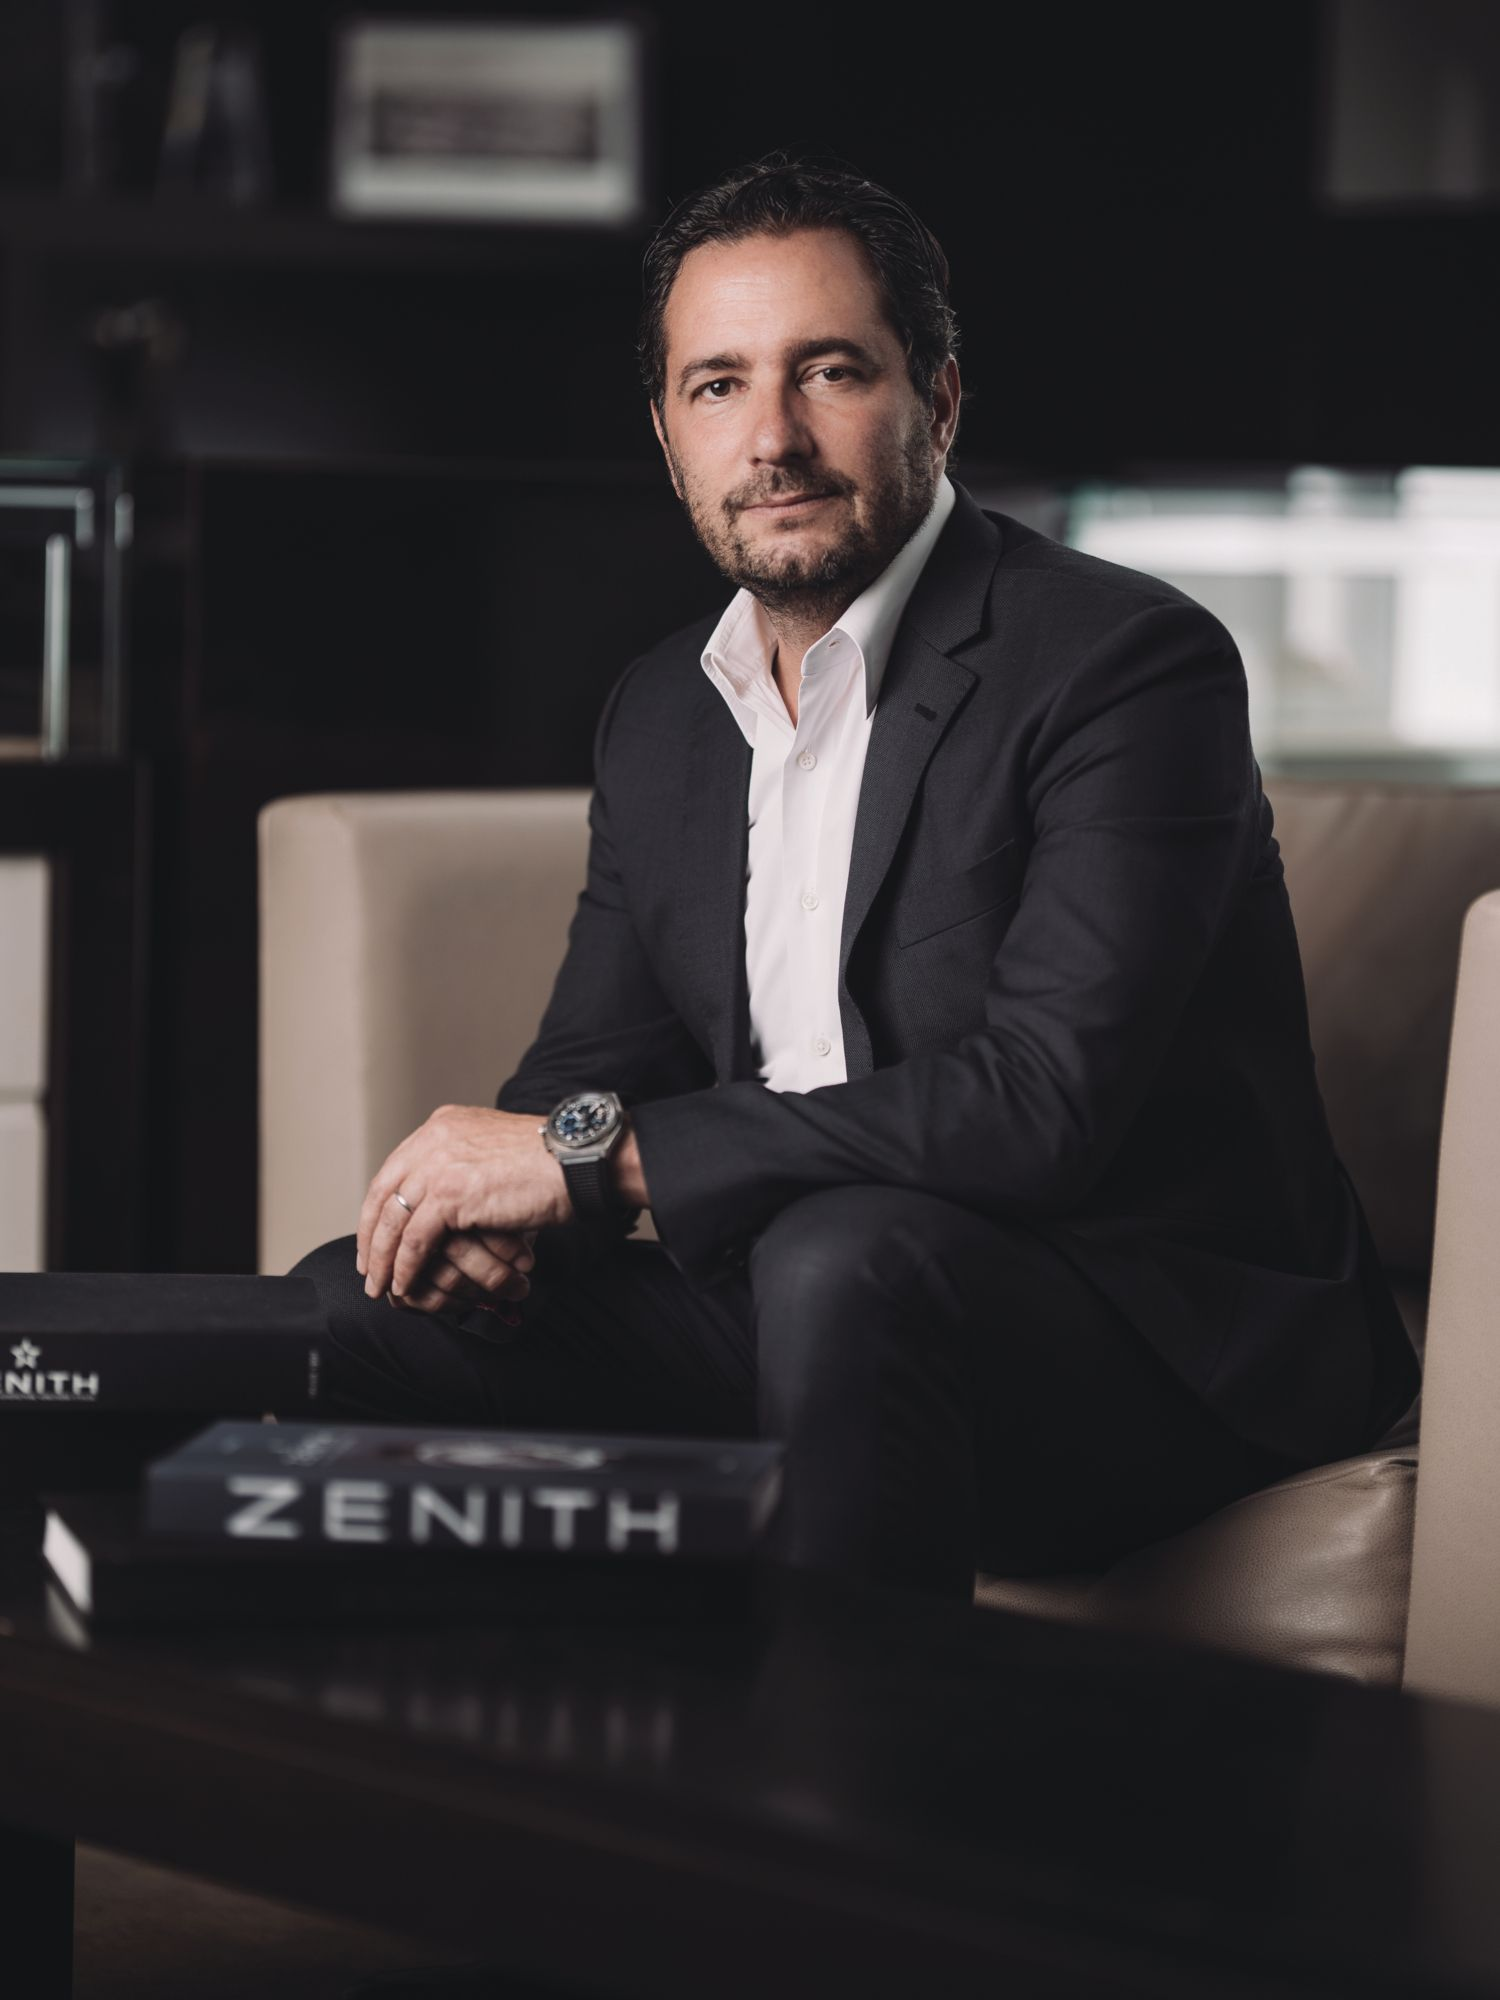 Zenith CEO Julien Tornare On Lessons From The Pandemic